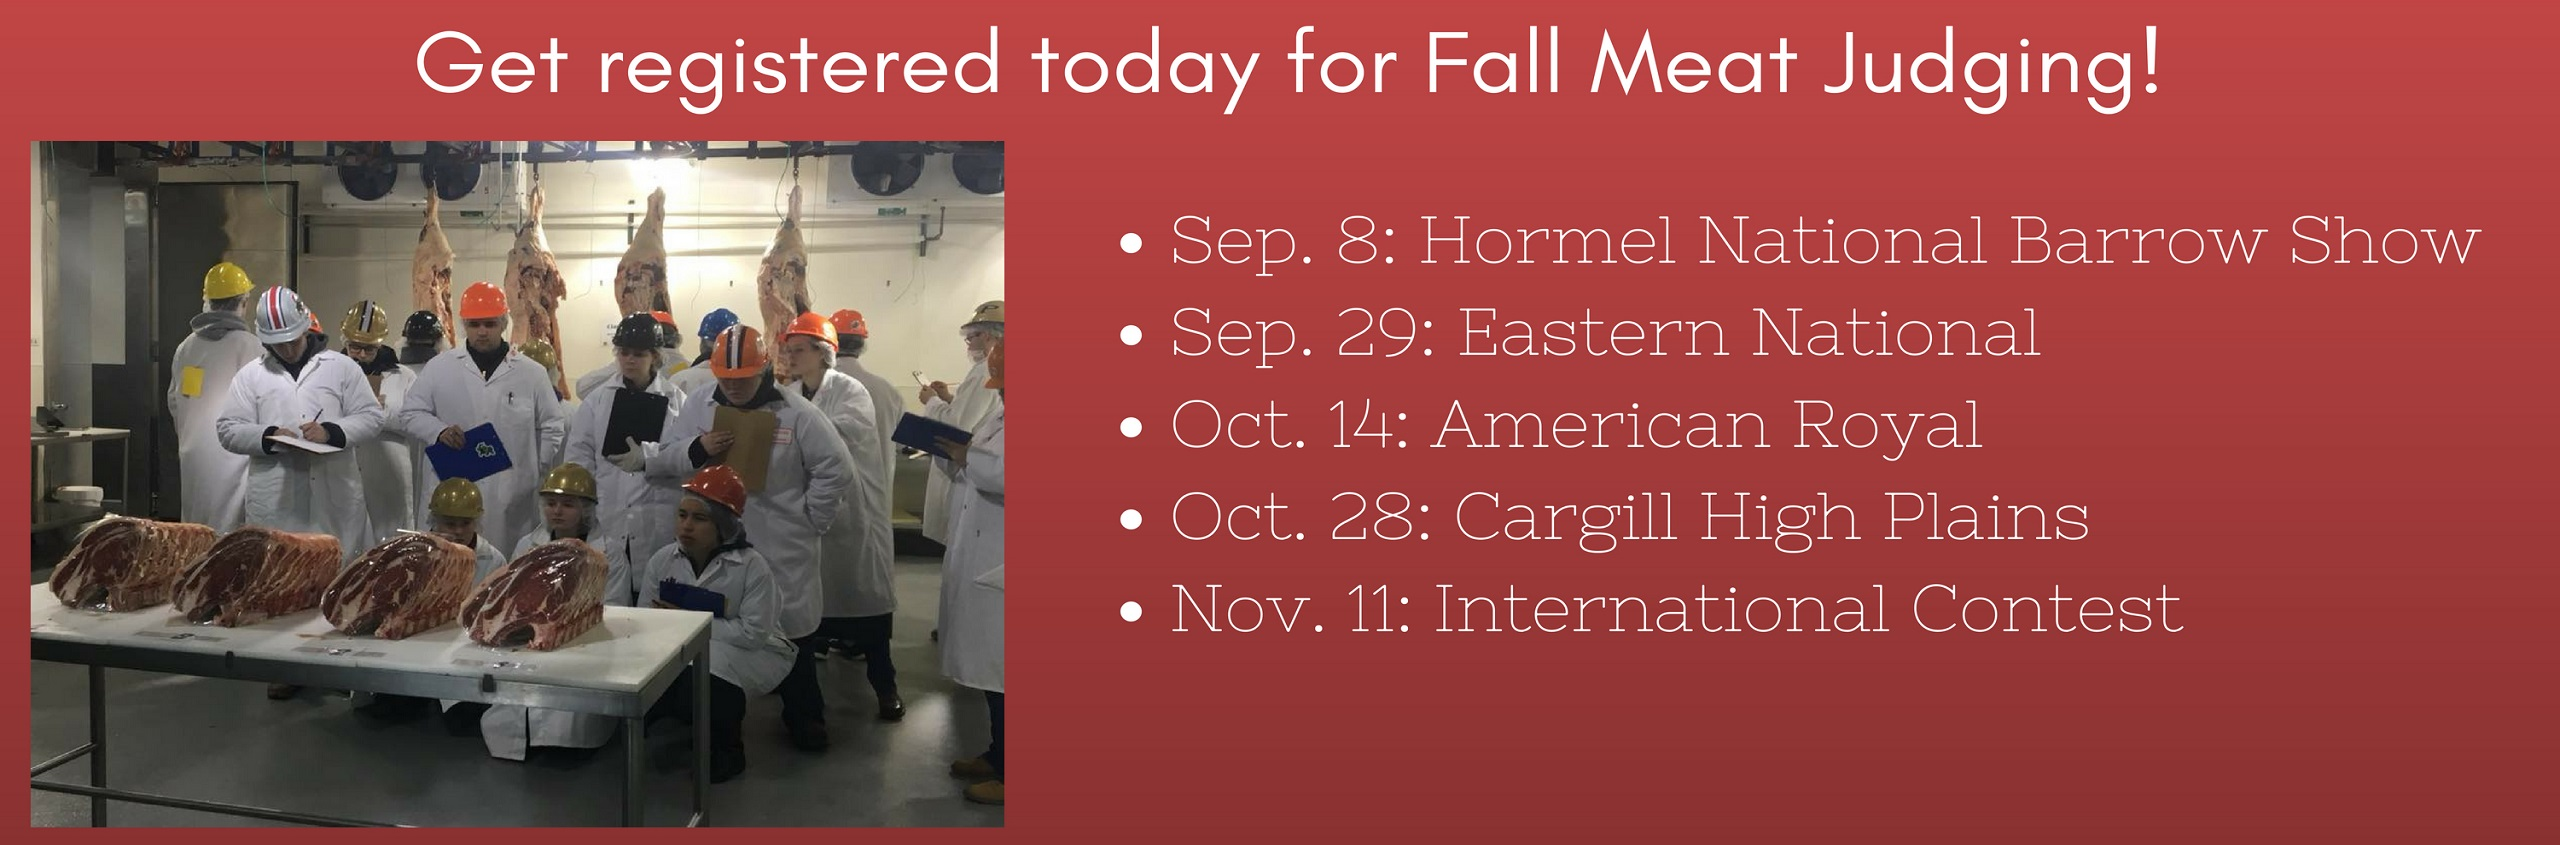 Register Today for Fall Meat Judging